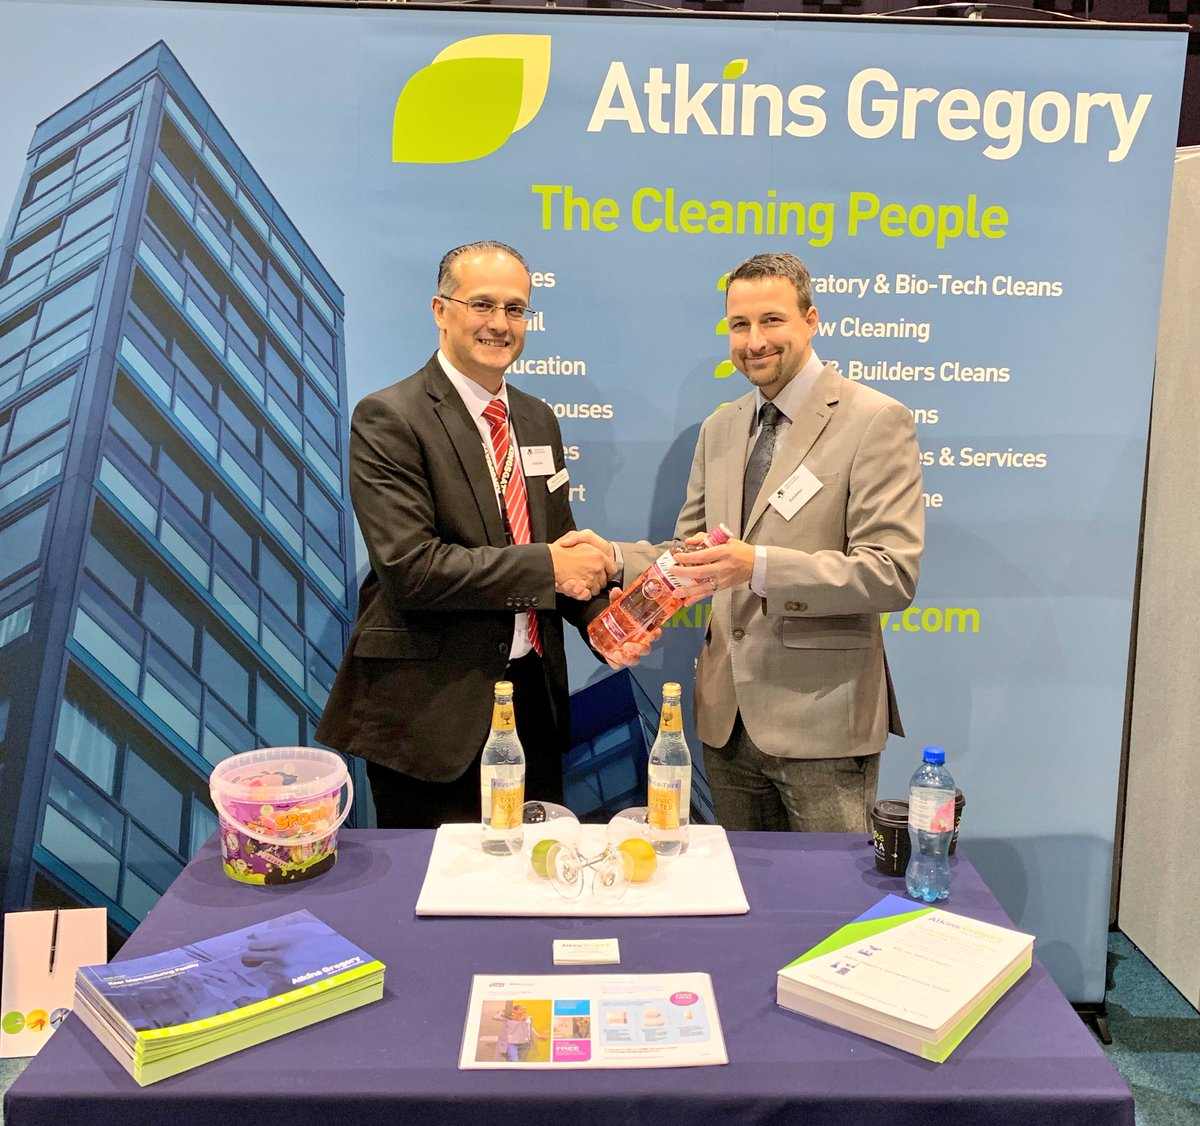 Peterborough B2B Exhibition 2018, Atkins Gregory Ltd Cambridge Cleaning Contractors